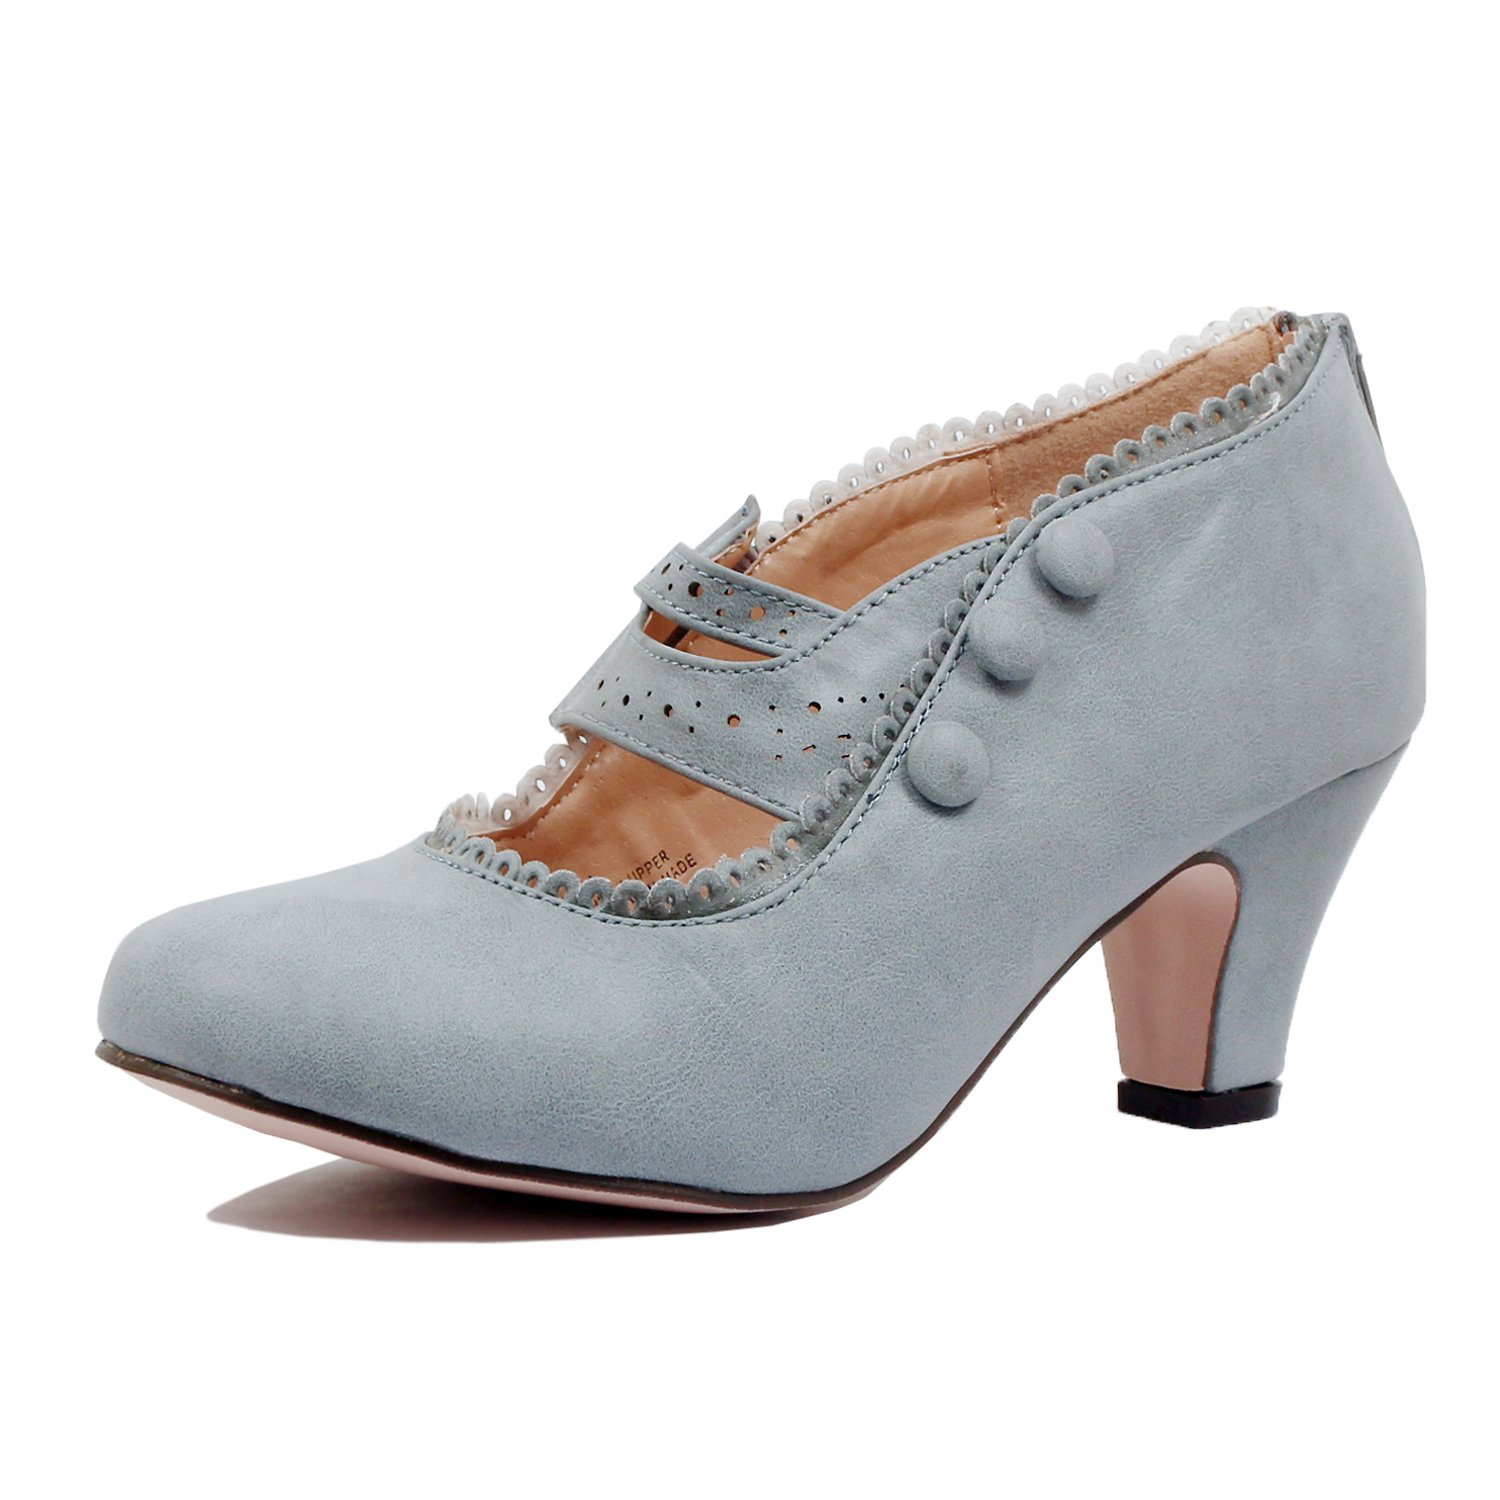 Guilty Shoes - Womens Classic Retro Two Tone Embroidery - Wing Tip Lace Up Kitten Heel Oxford Pumps (10 B(M) US, Greyv2 Pu)